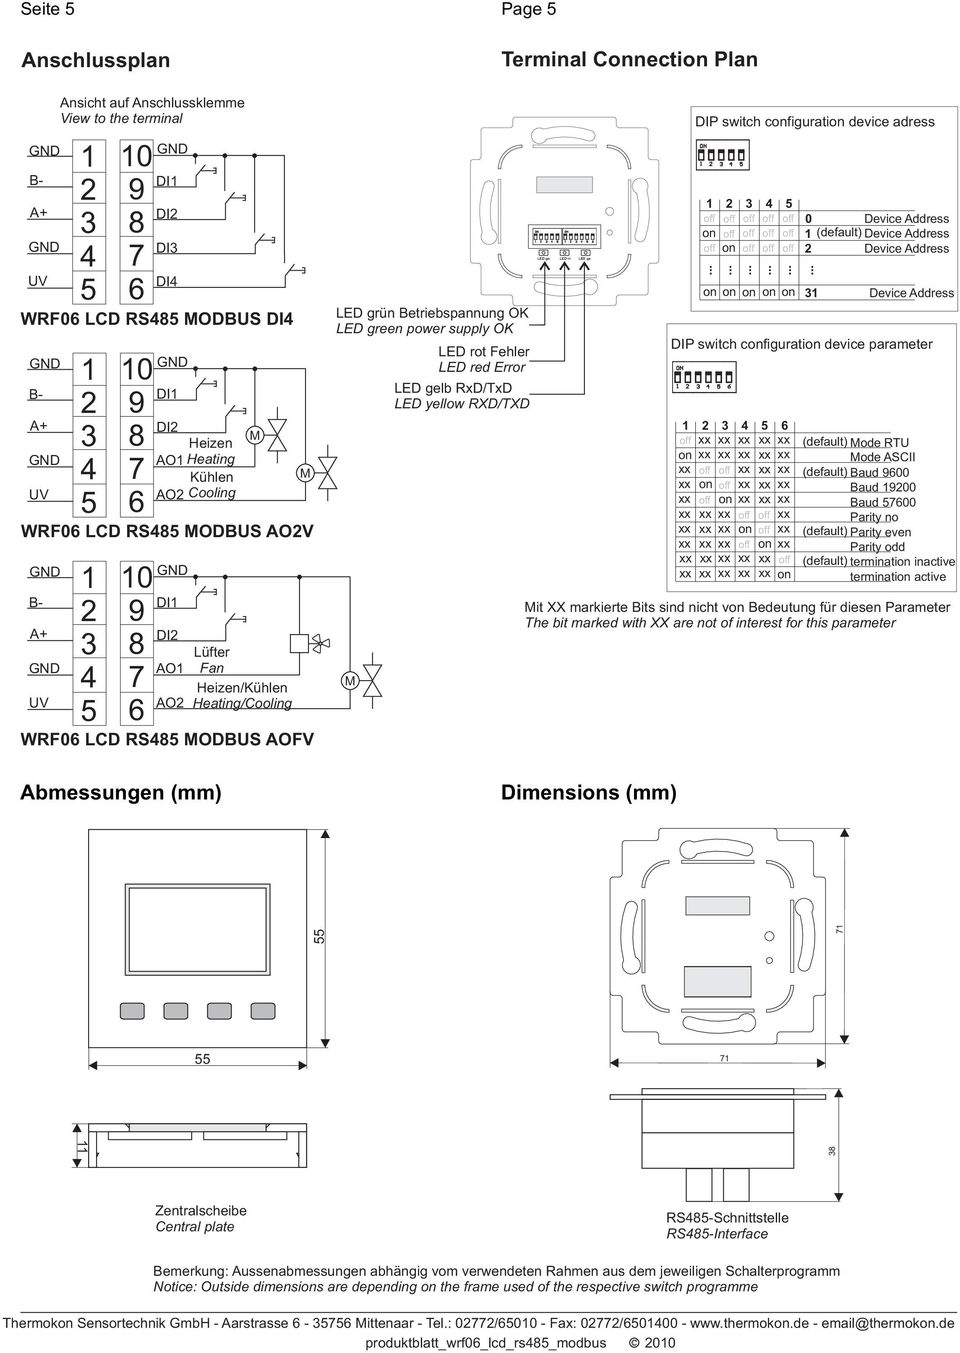 LED rt LED ge Dimensions (mm) DIP switch configuration device adress off off off off off 0 Device Address on off off off off (default) Device Address off on off off off Device Address on on on on on